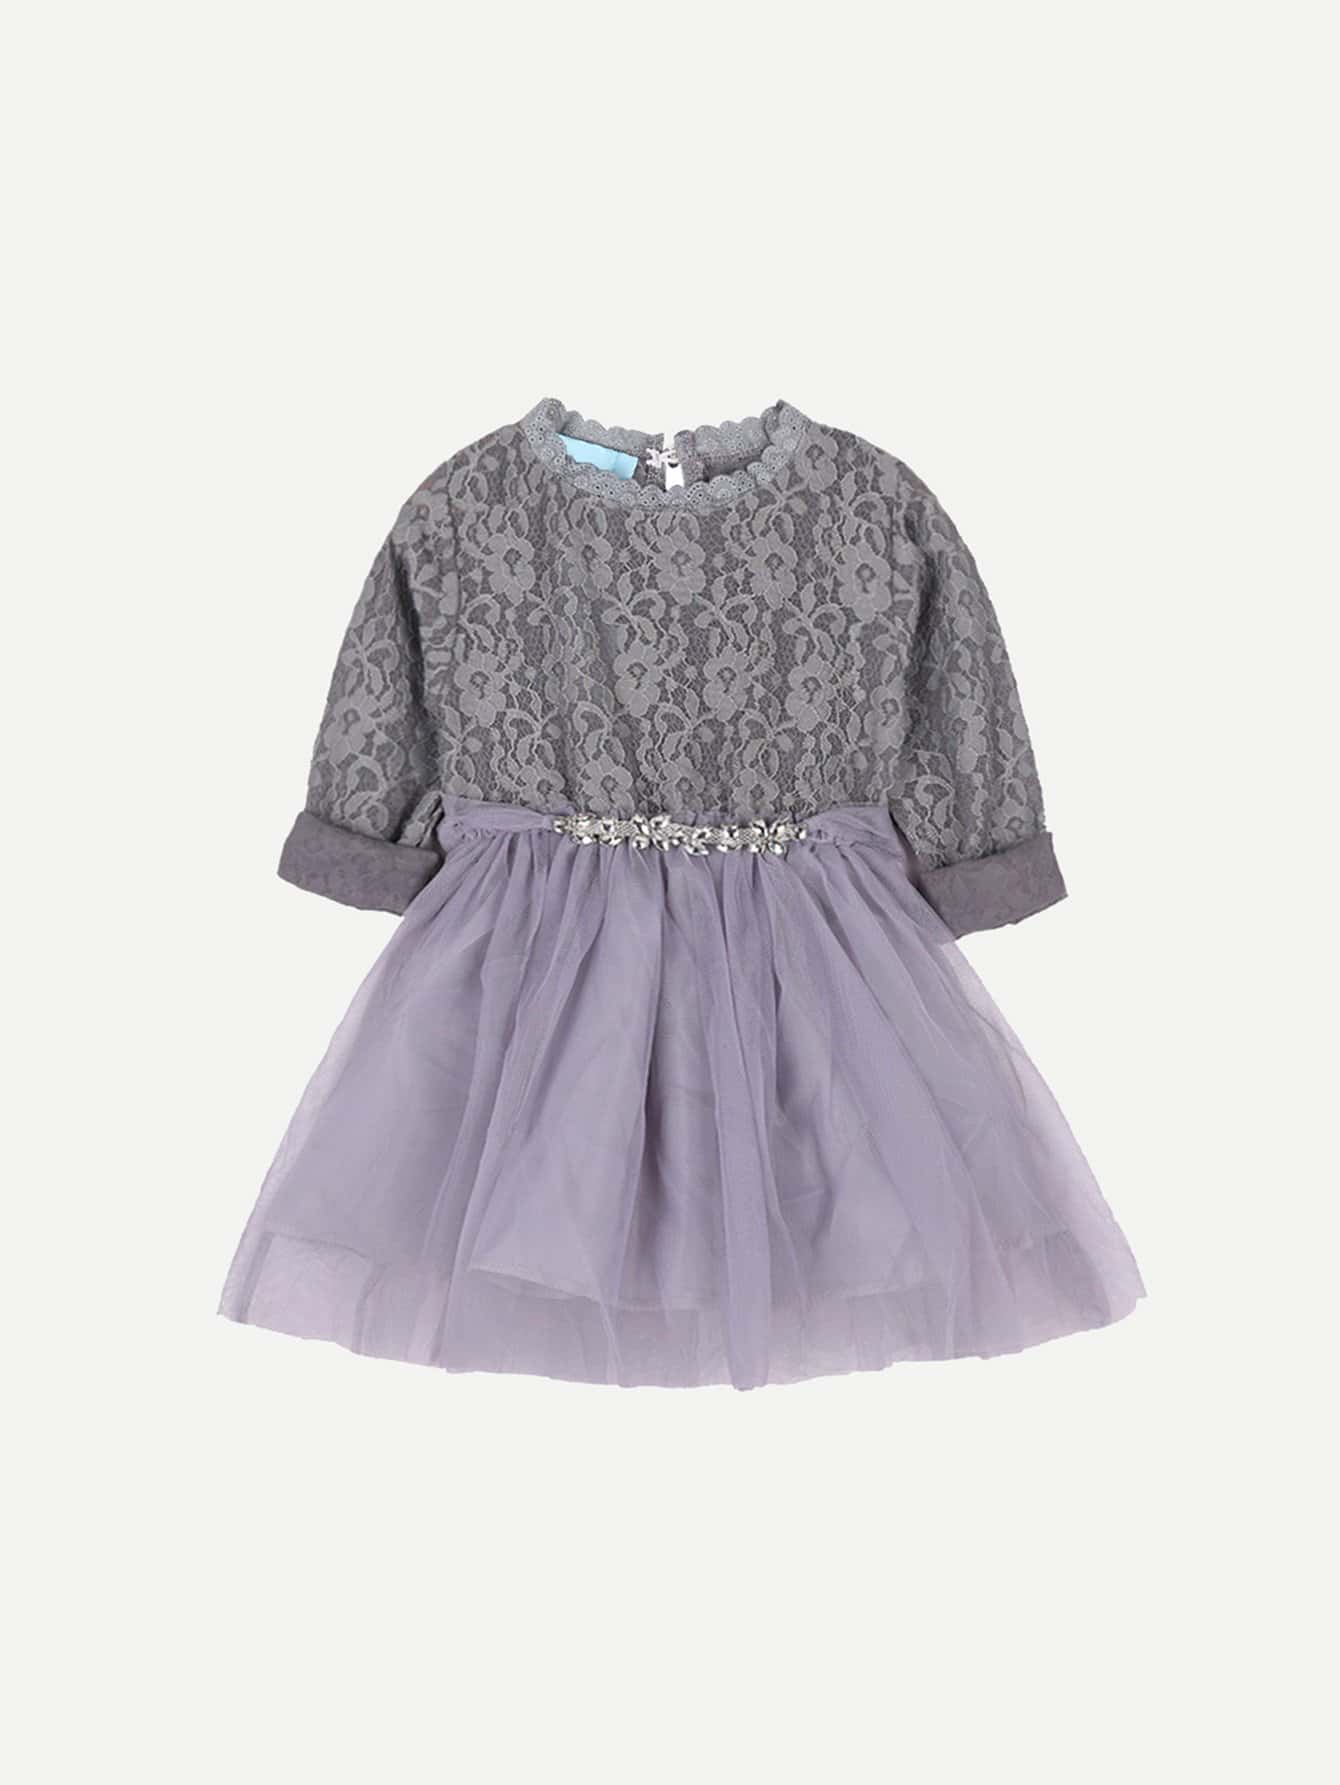 Girls Bow Detail Lace Overlay Dress lace overlay fit and flare dress